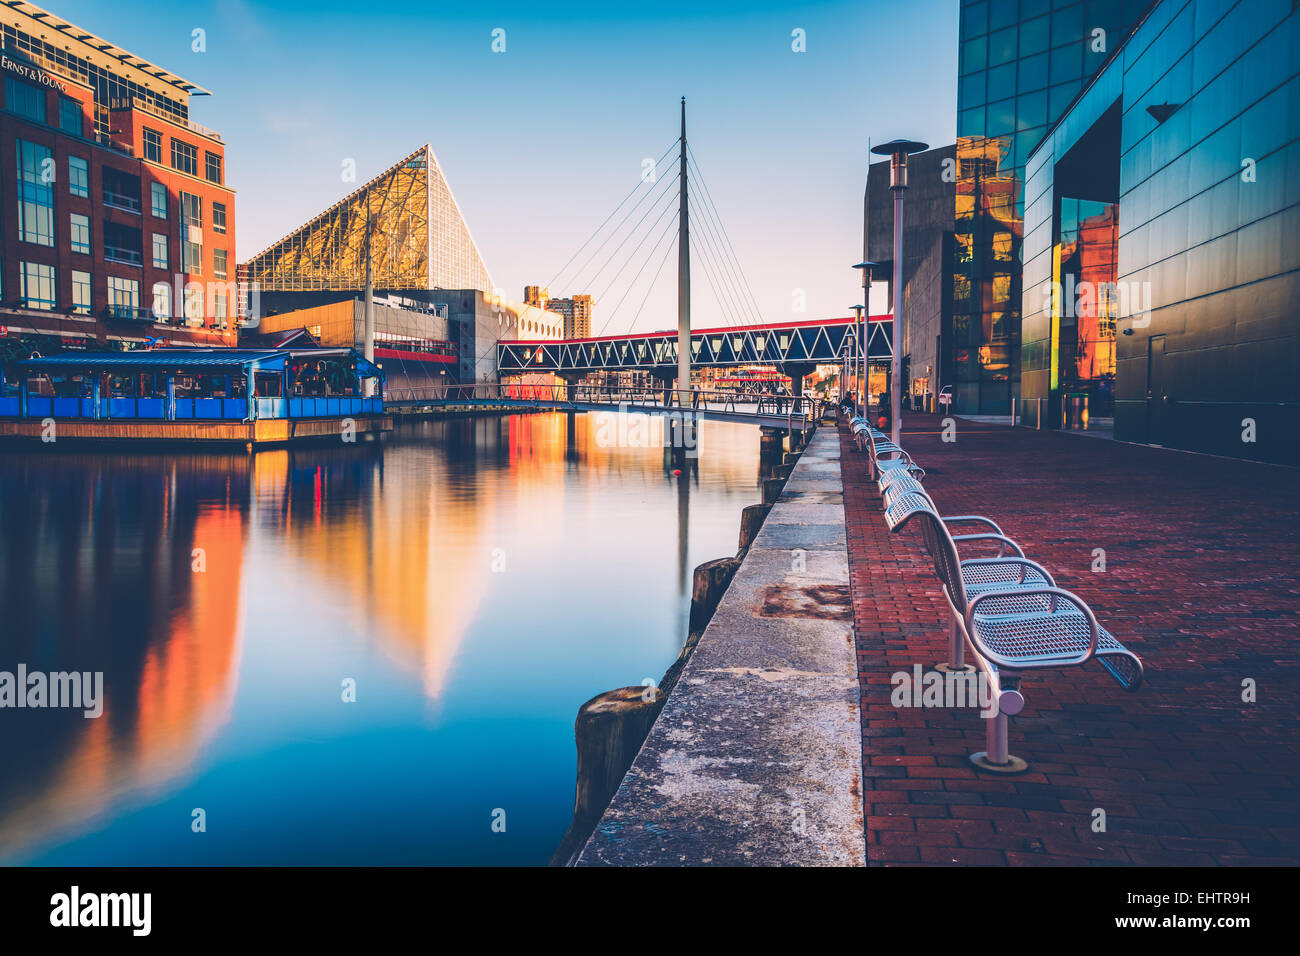 Long exposure of the Waterfront Promenade and the National Aquarium in Baltimore, Maryland. - Stock Image